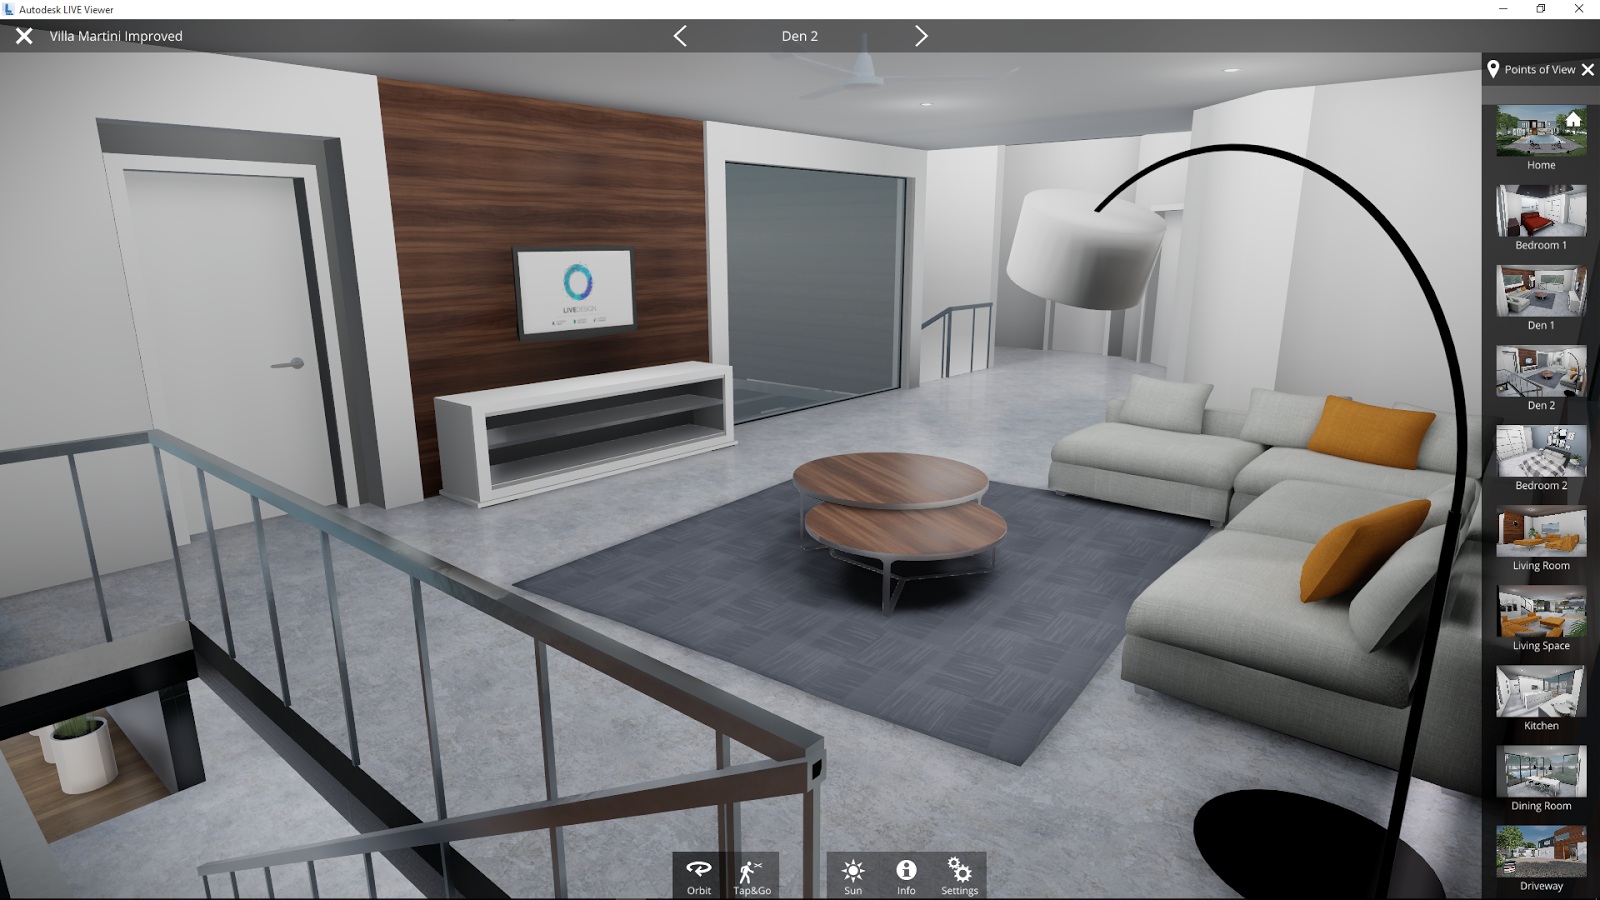 Exterior Home Design App For Ipad Revit Add Ons Autodesk Live Viewer Version 1 7 Released